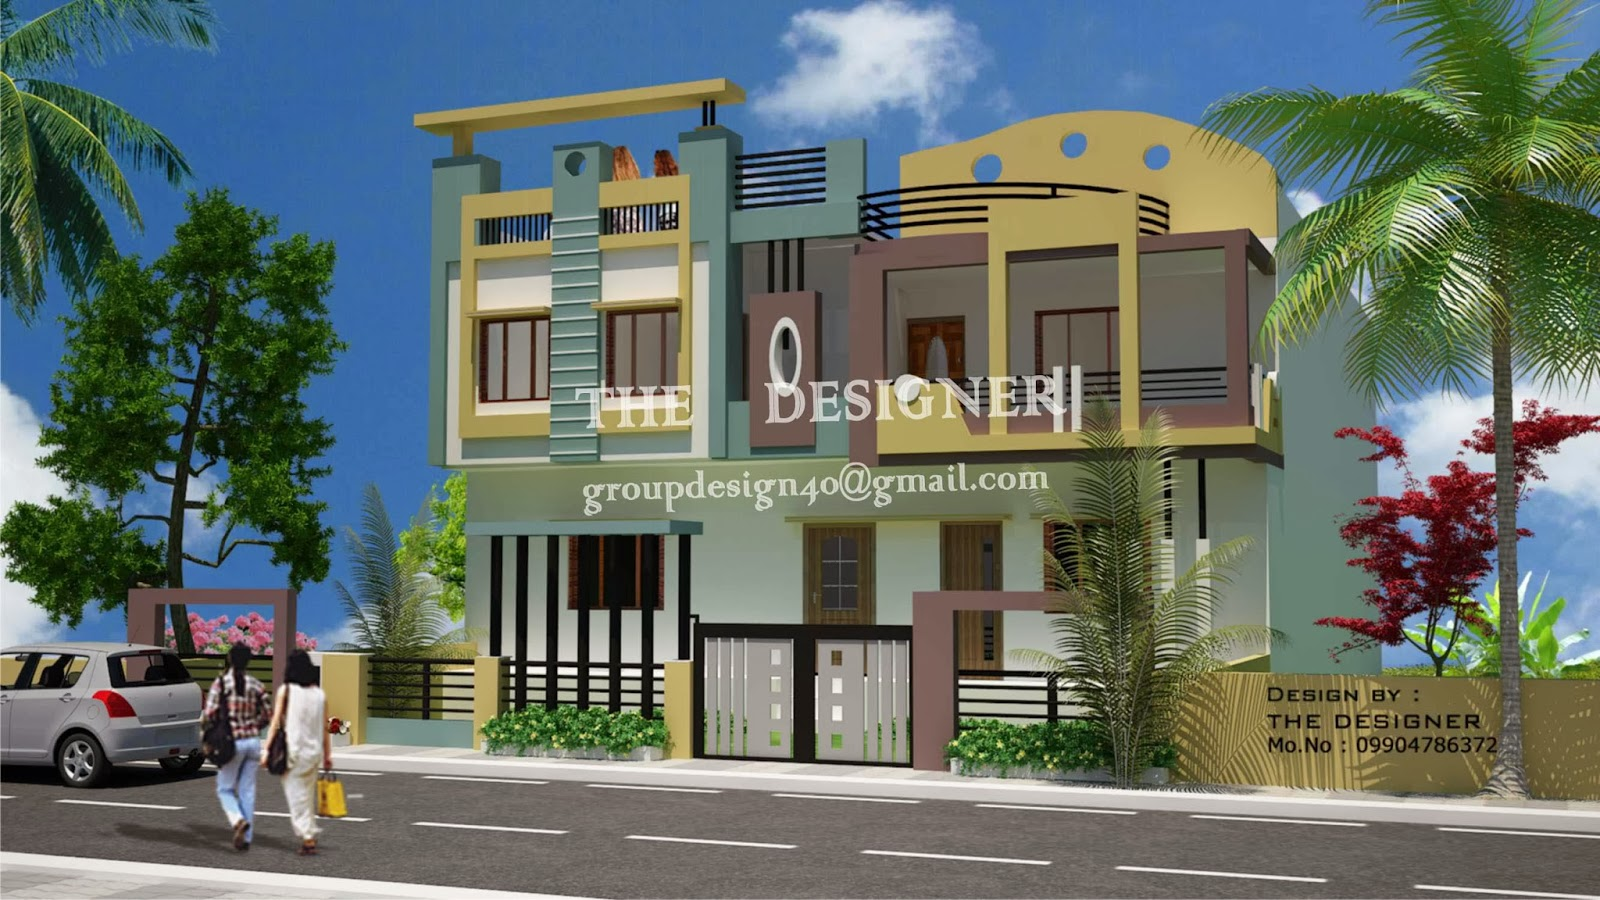 group design architectural plan elevation architectural plan elevation